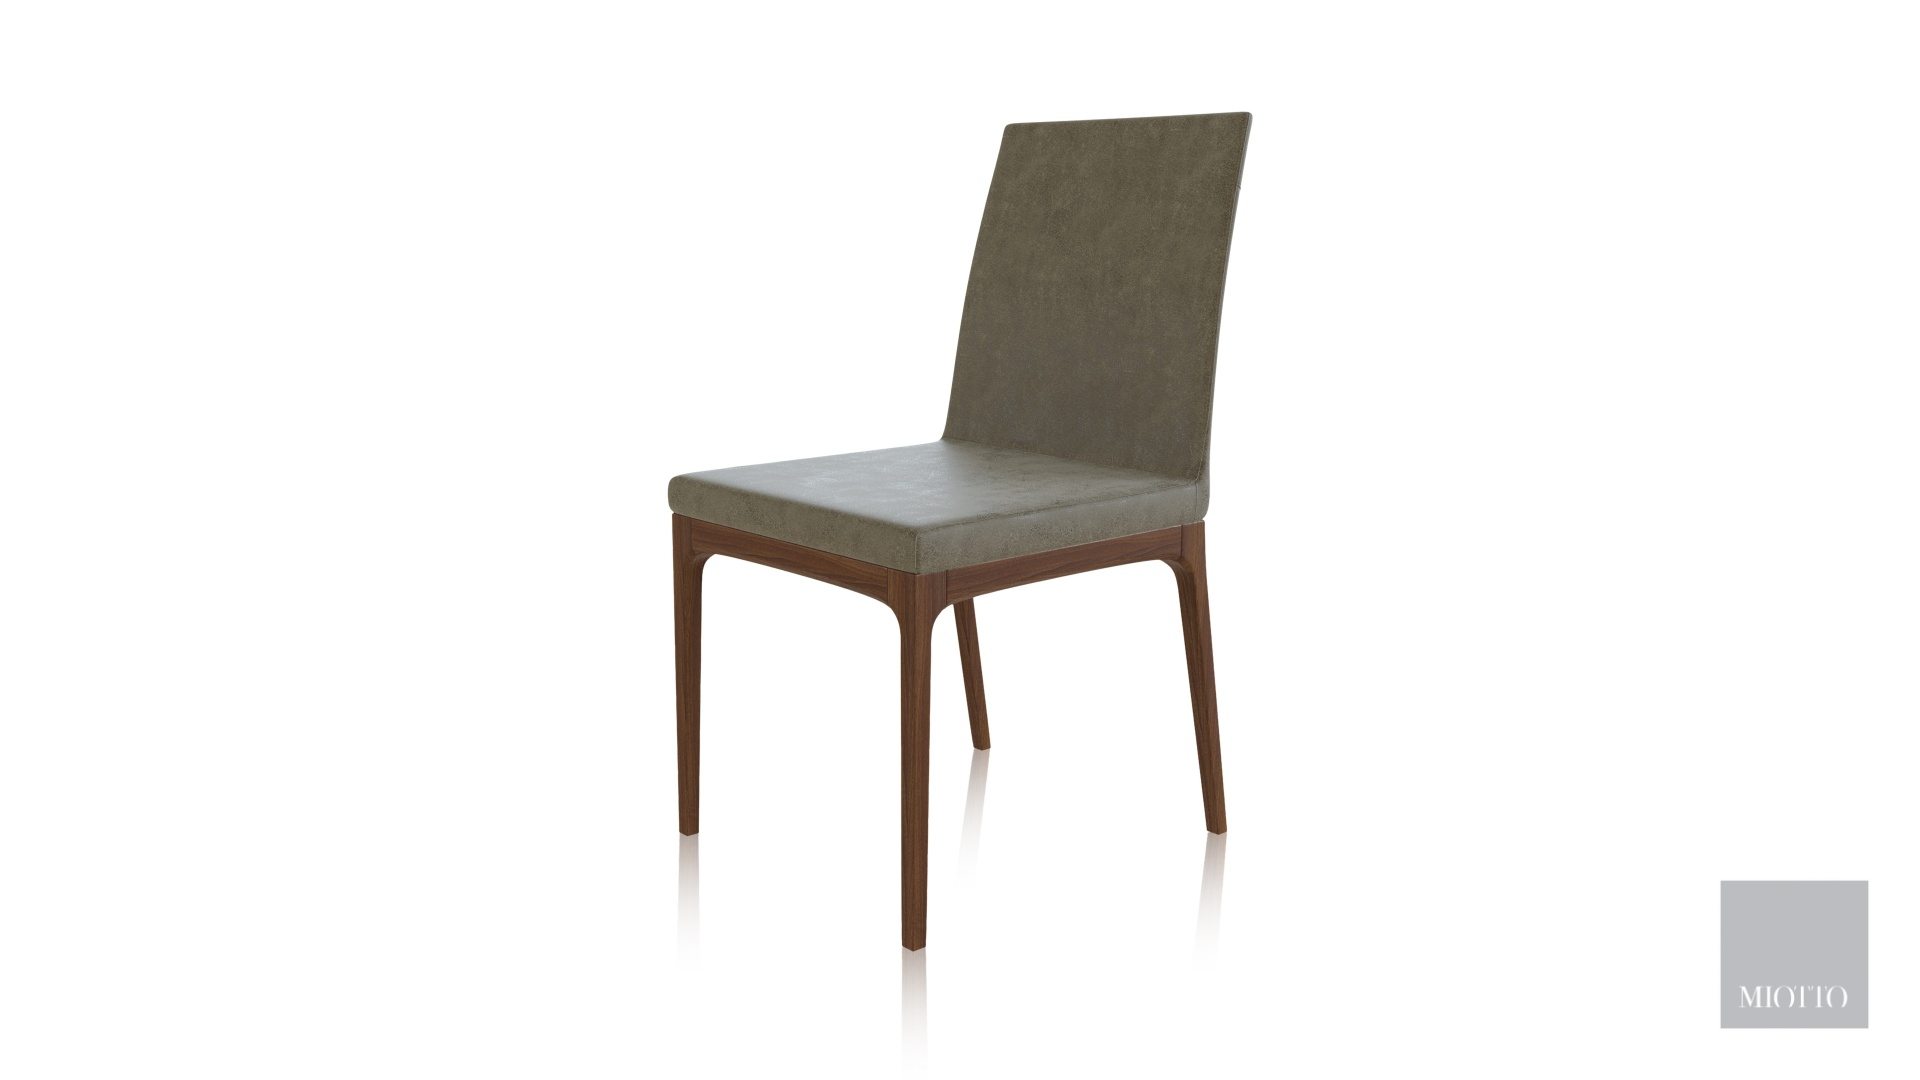 miotto_lanzo LB DC light grey front T miotto dining chair furniture